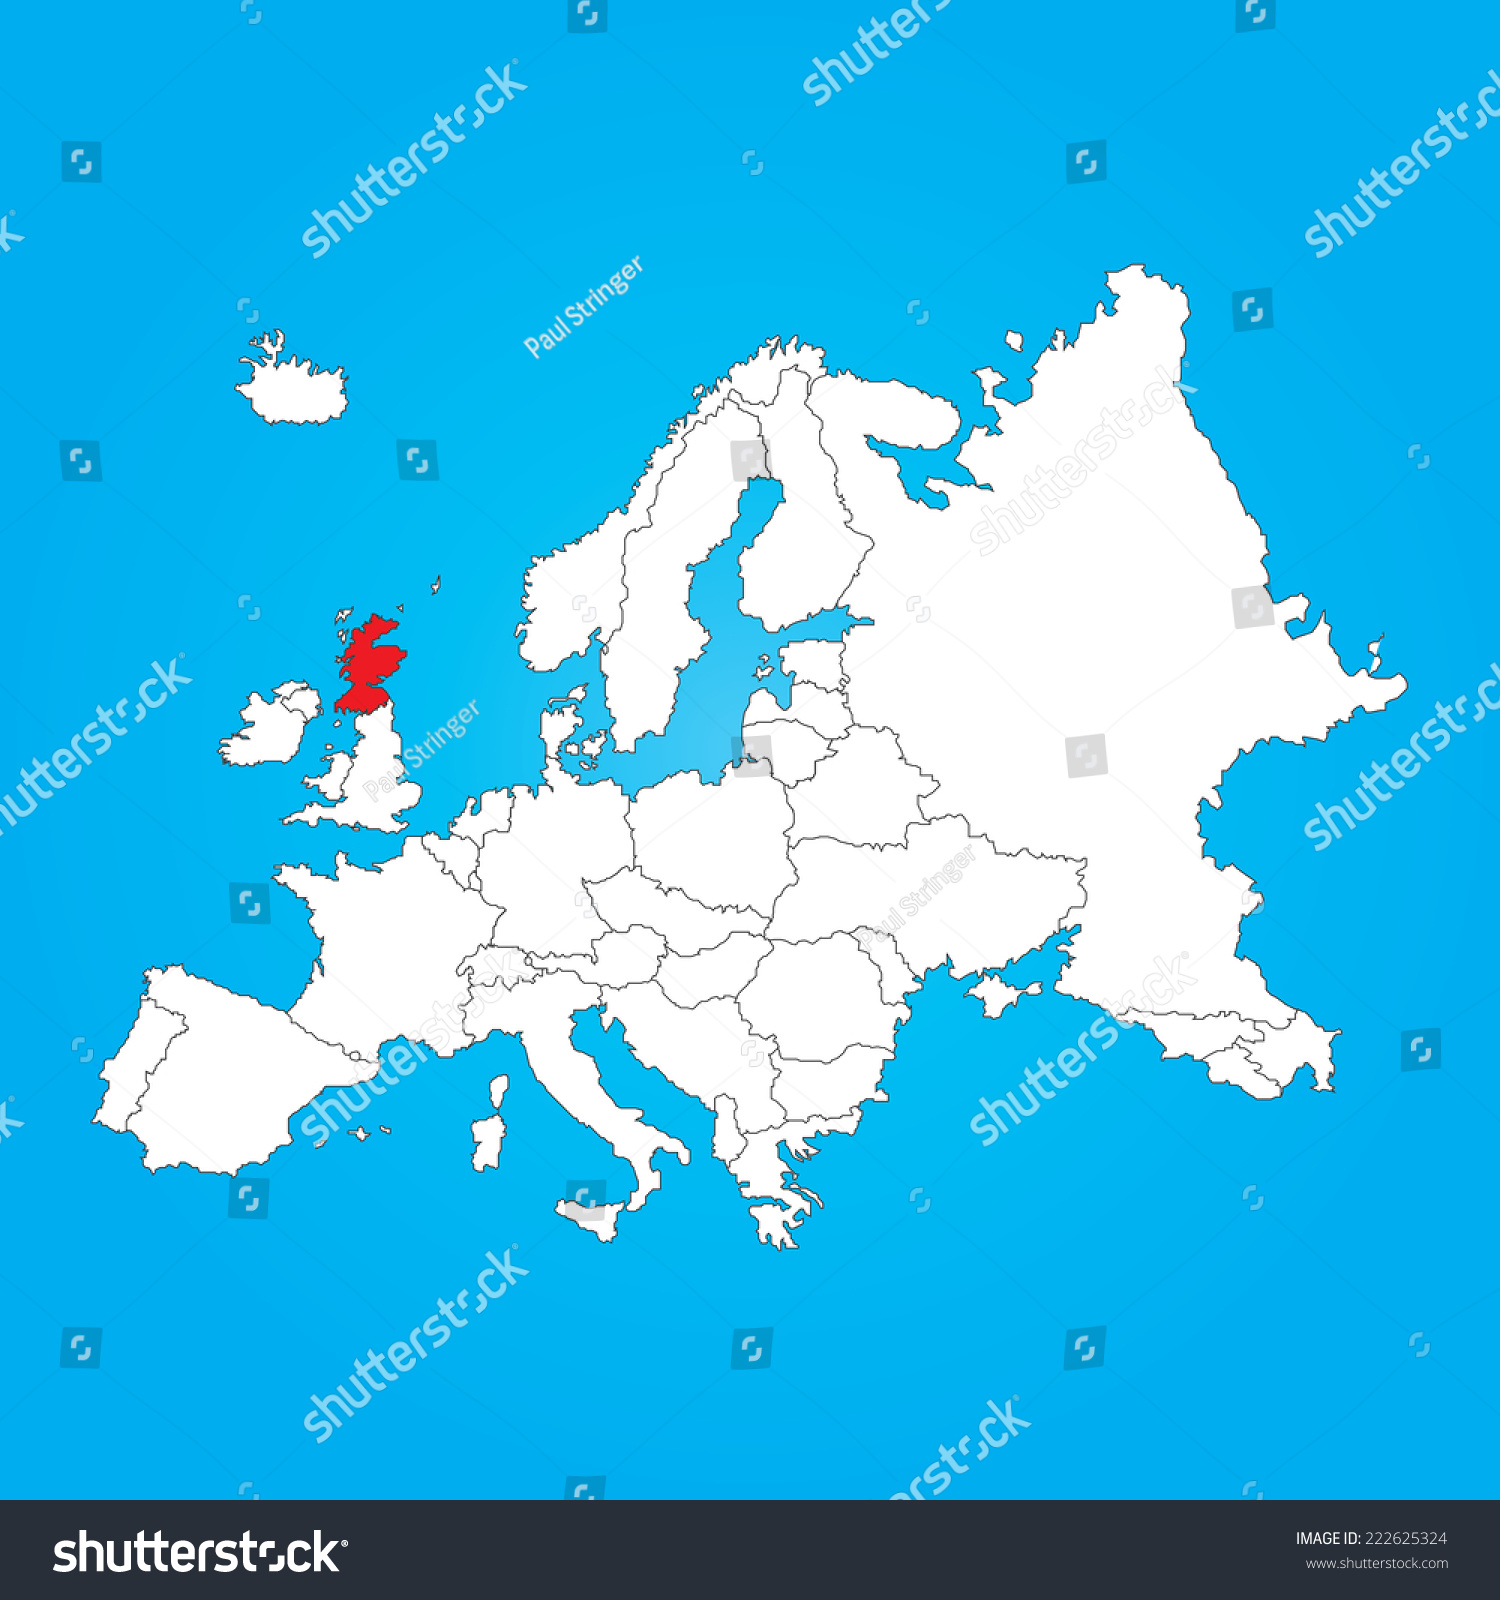 Map Europe Selected Country Scotland Stock Illustration ...